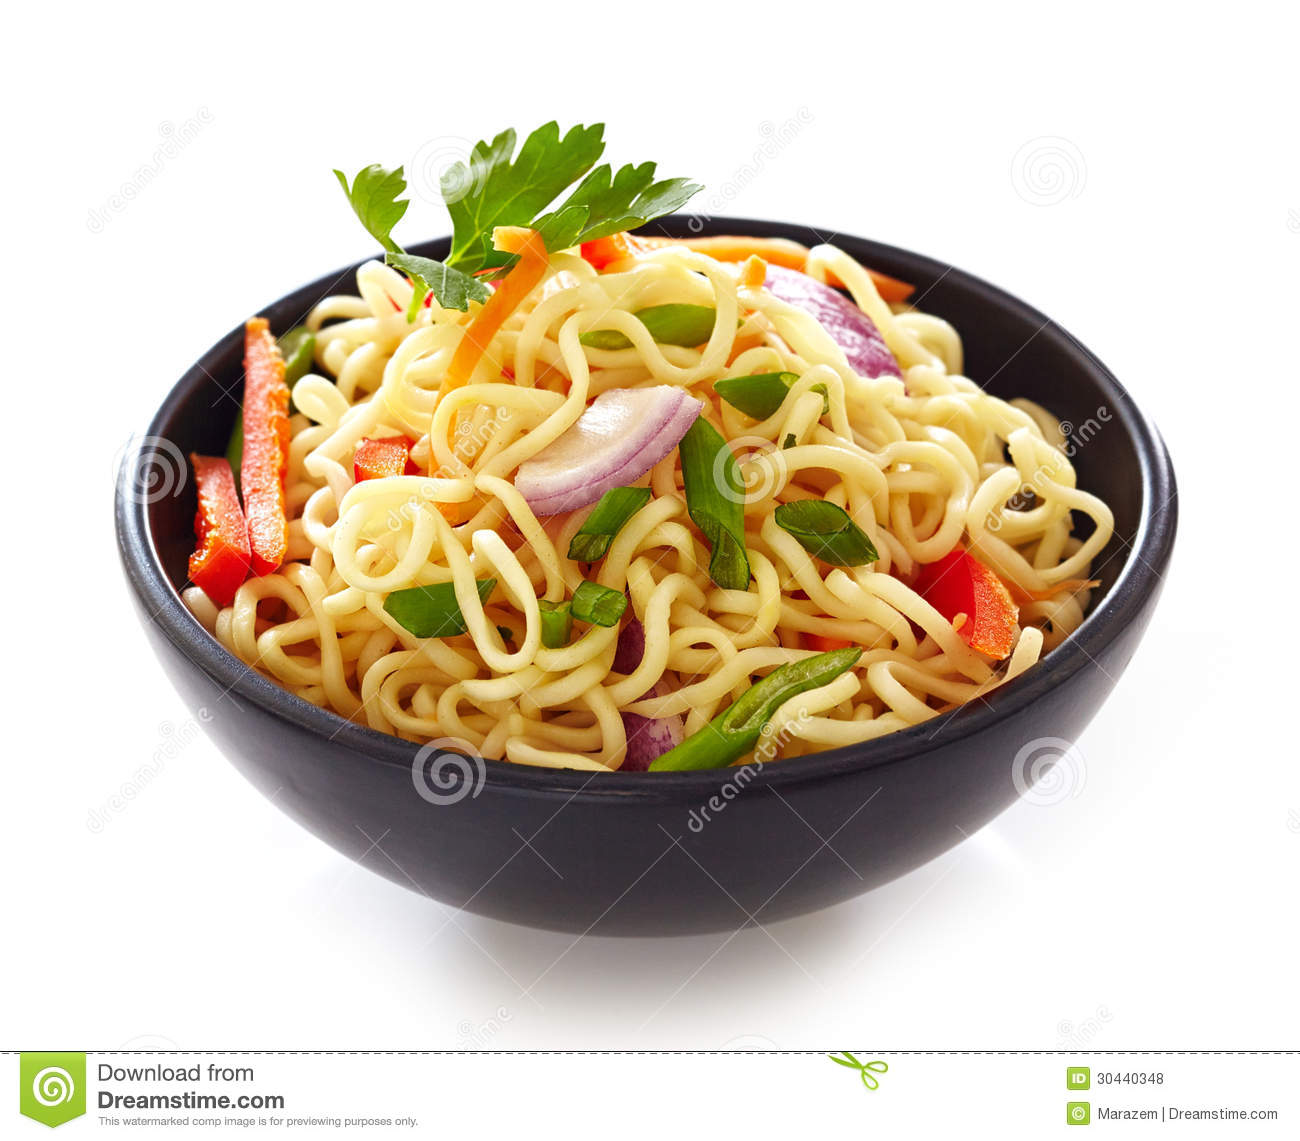 Bowl Of Chinese Noodles With Vegetables Royalty Free Stock Photos.